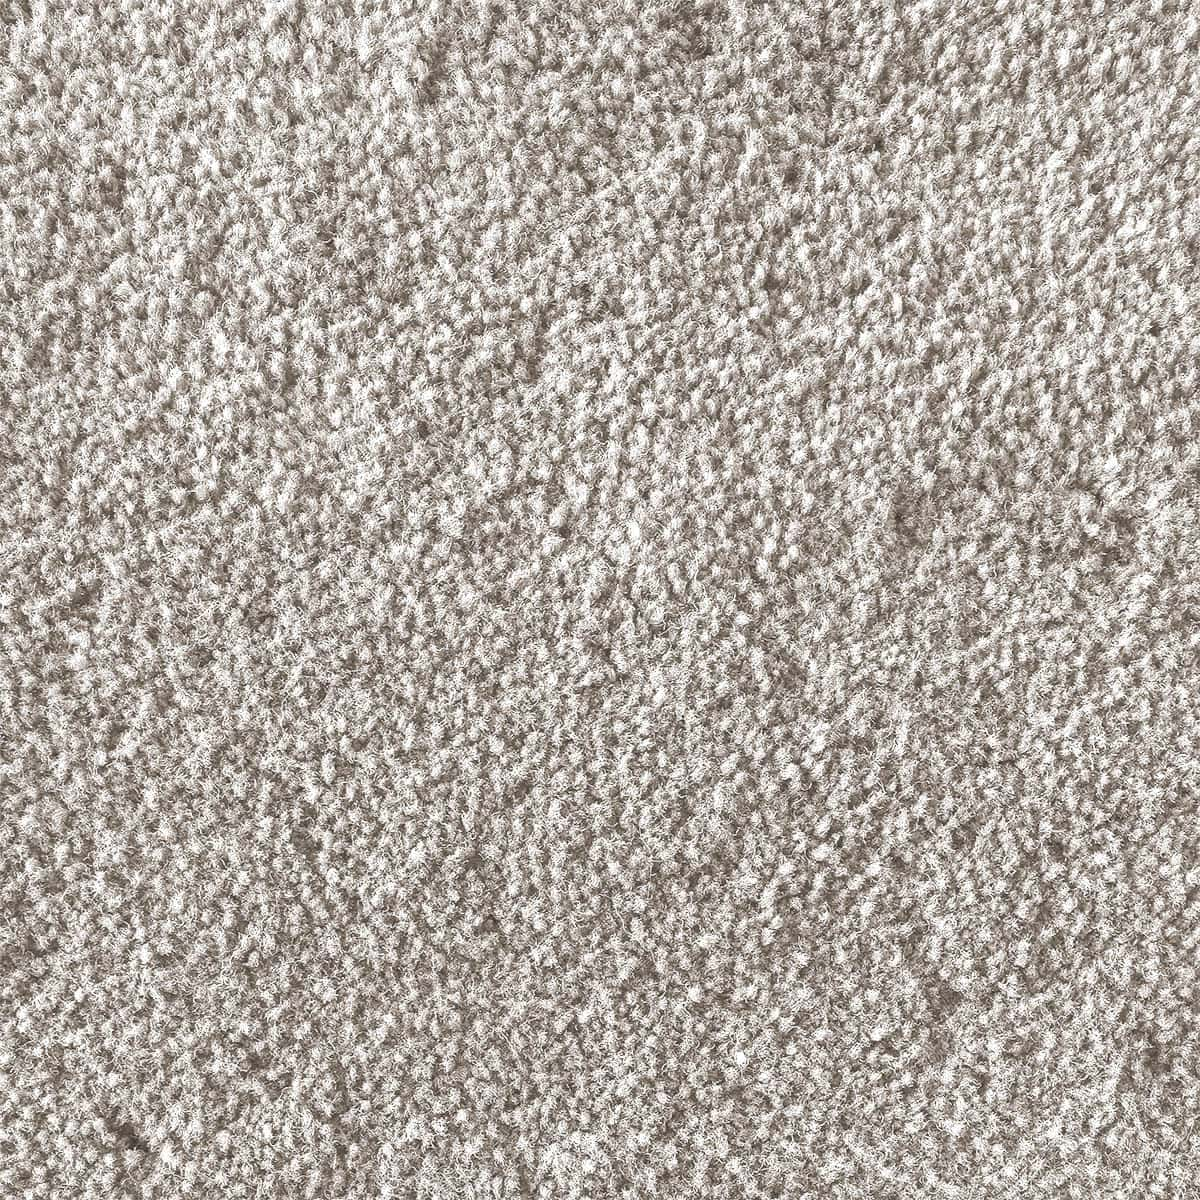 Photo Carpet Cleaning Product Images